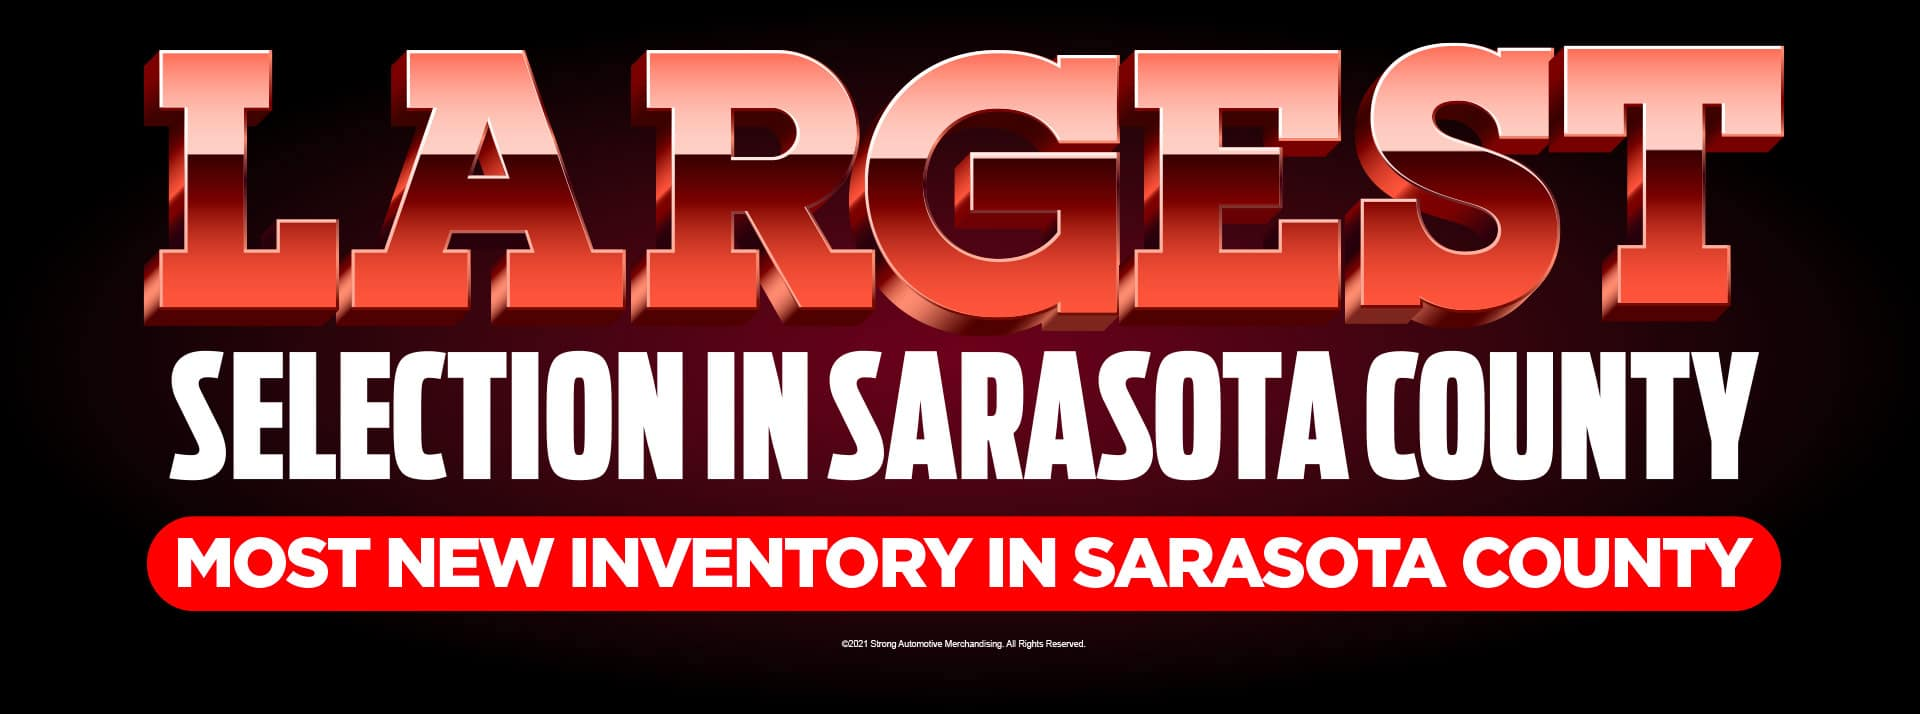 Largest Selection in Sarasota County and Most New Inventory in Sarasota County - ACT NOW